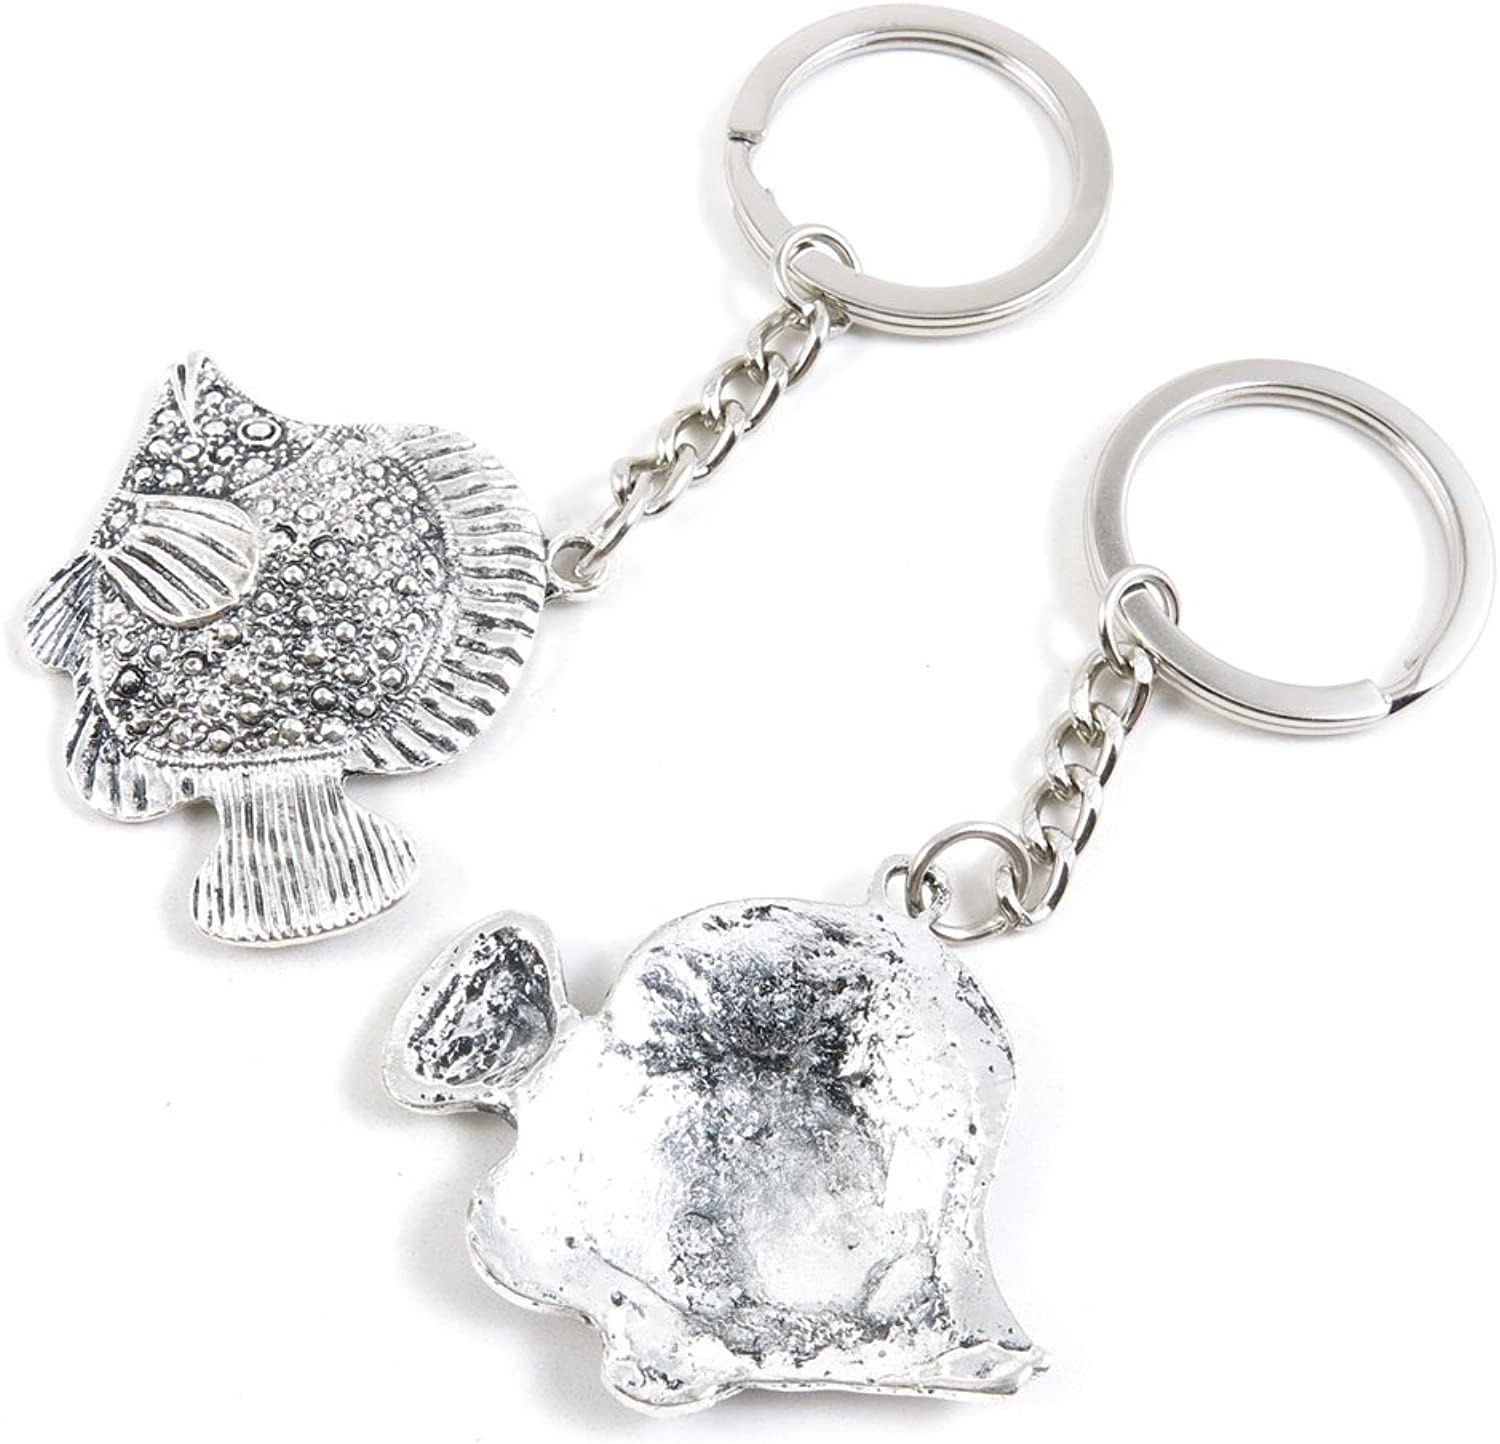 100 Pieces Keychain Keyring Door Car Key Chain Ring Tag Charms Bulk Supply Jewelry Making Clasp Findings K8CR8Q Tropical Fish